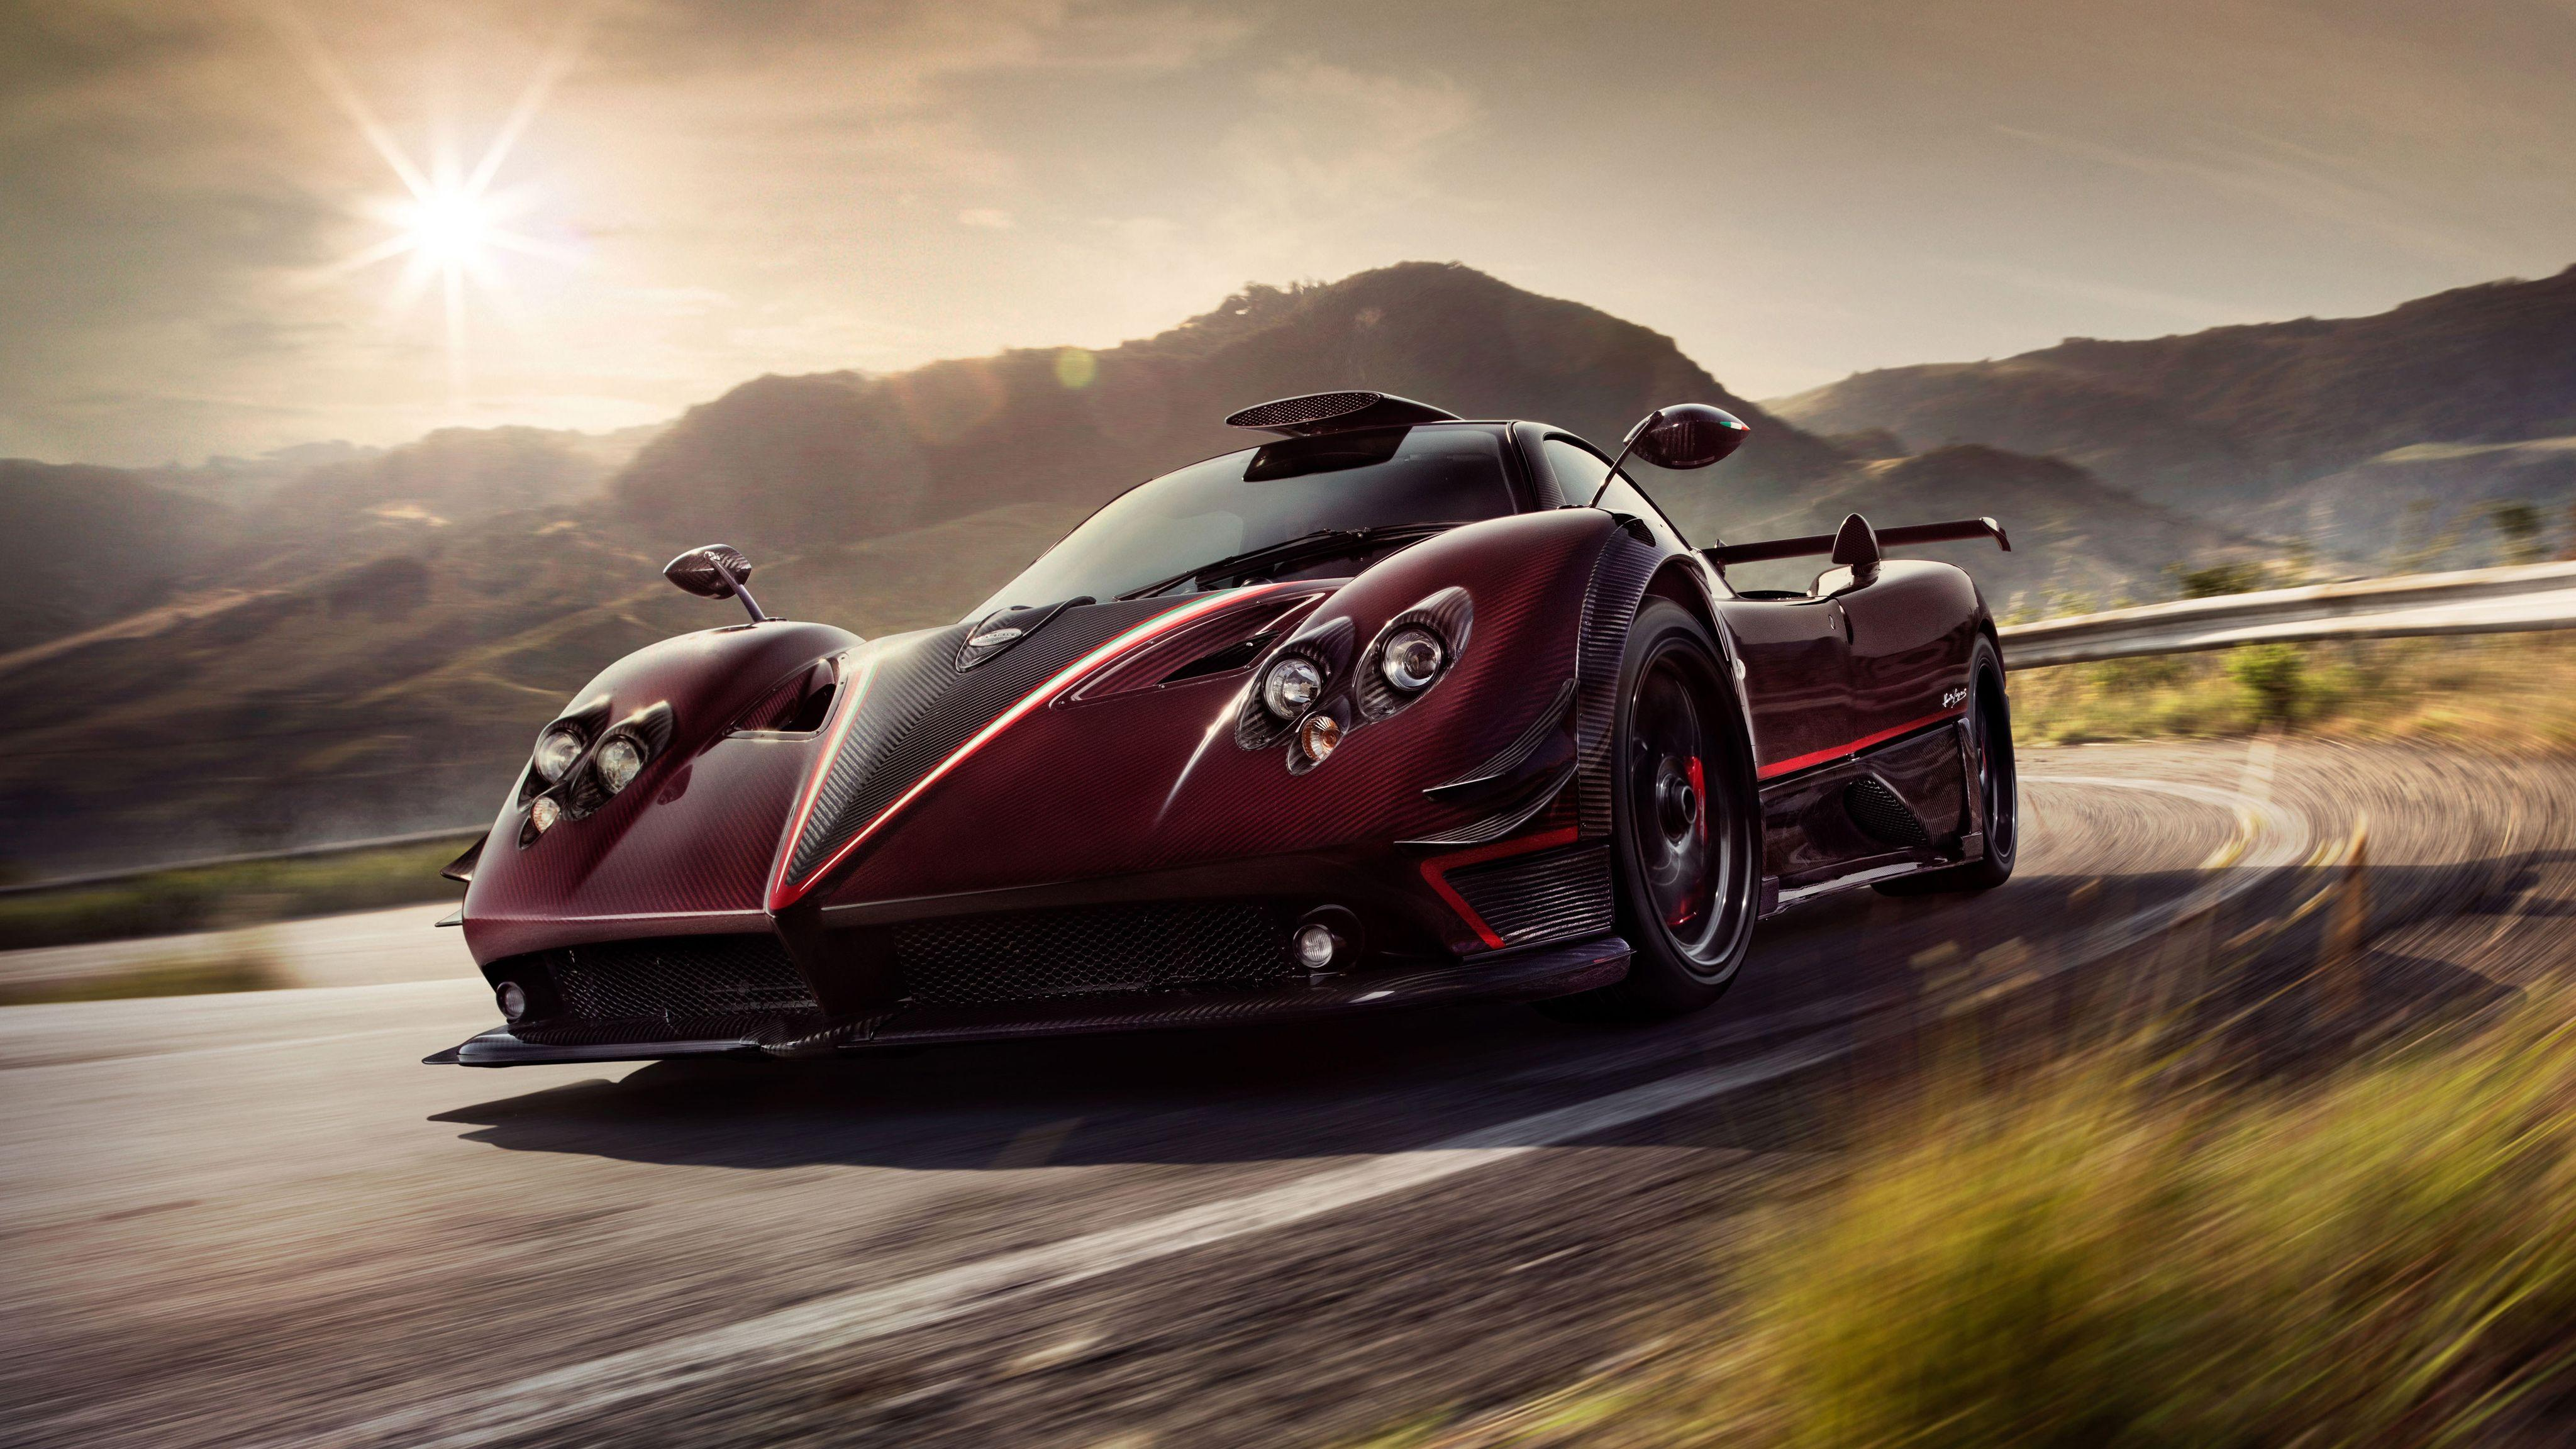 2017 Pagani Zonda Fantasma Evo 2 Wallpapers